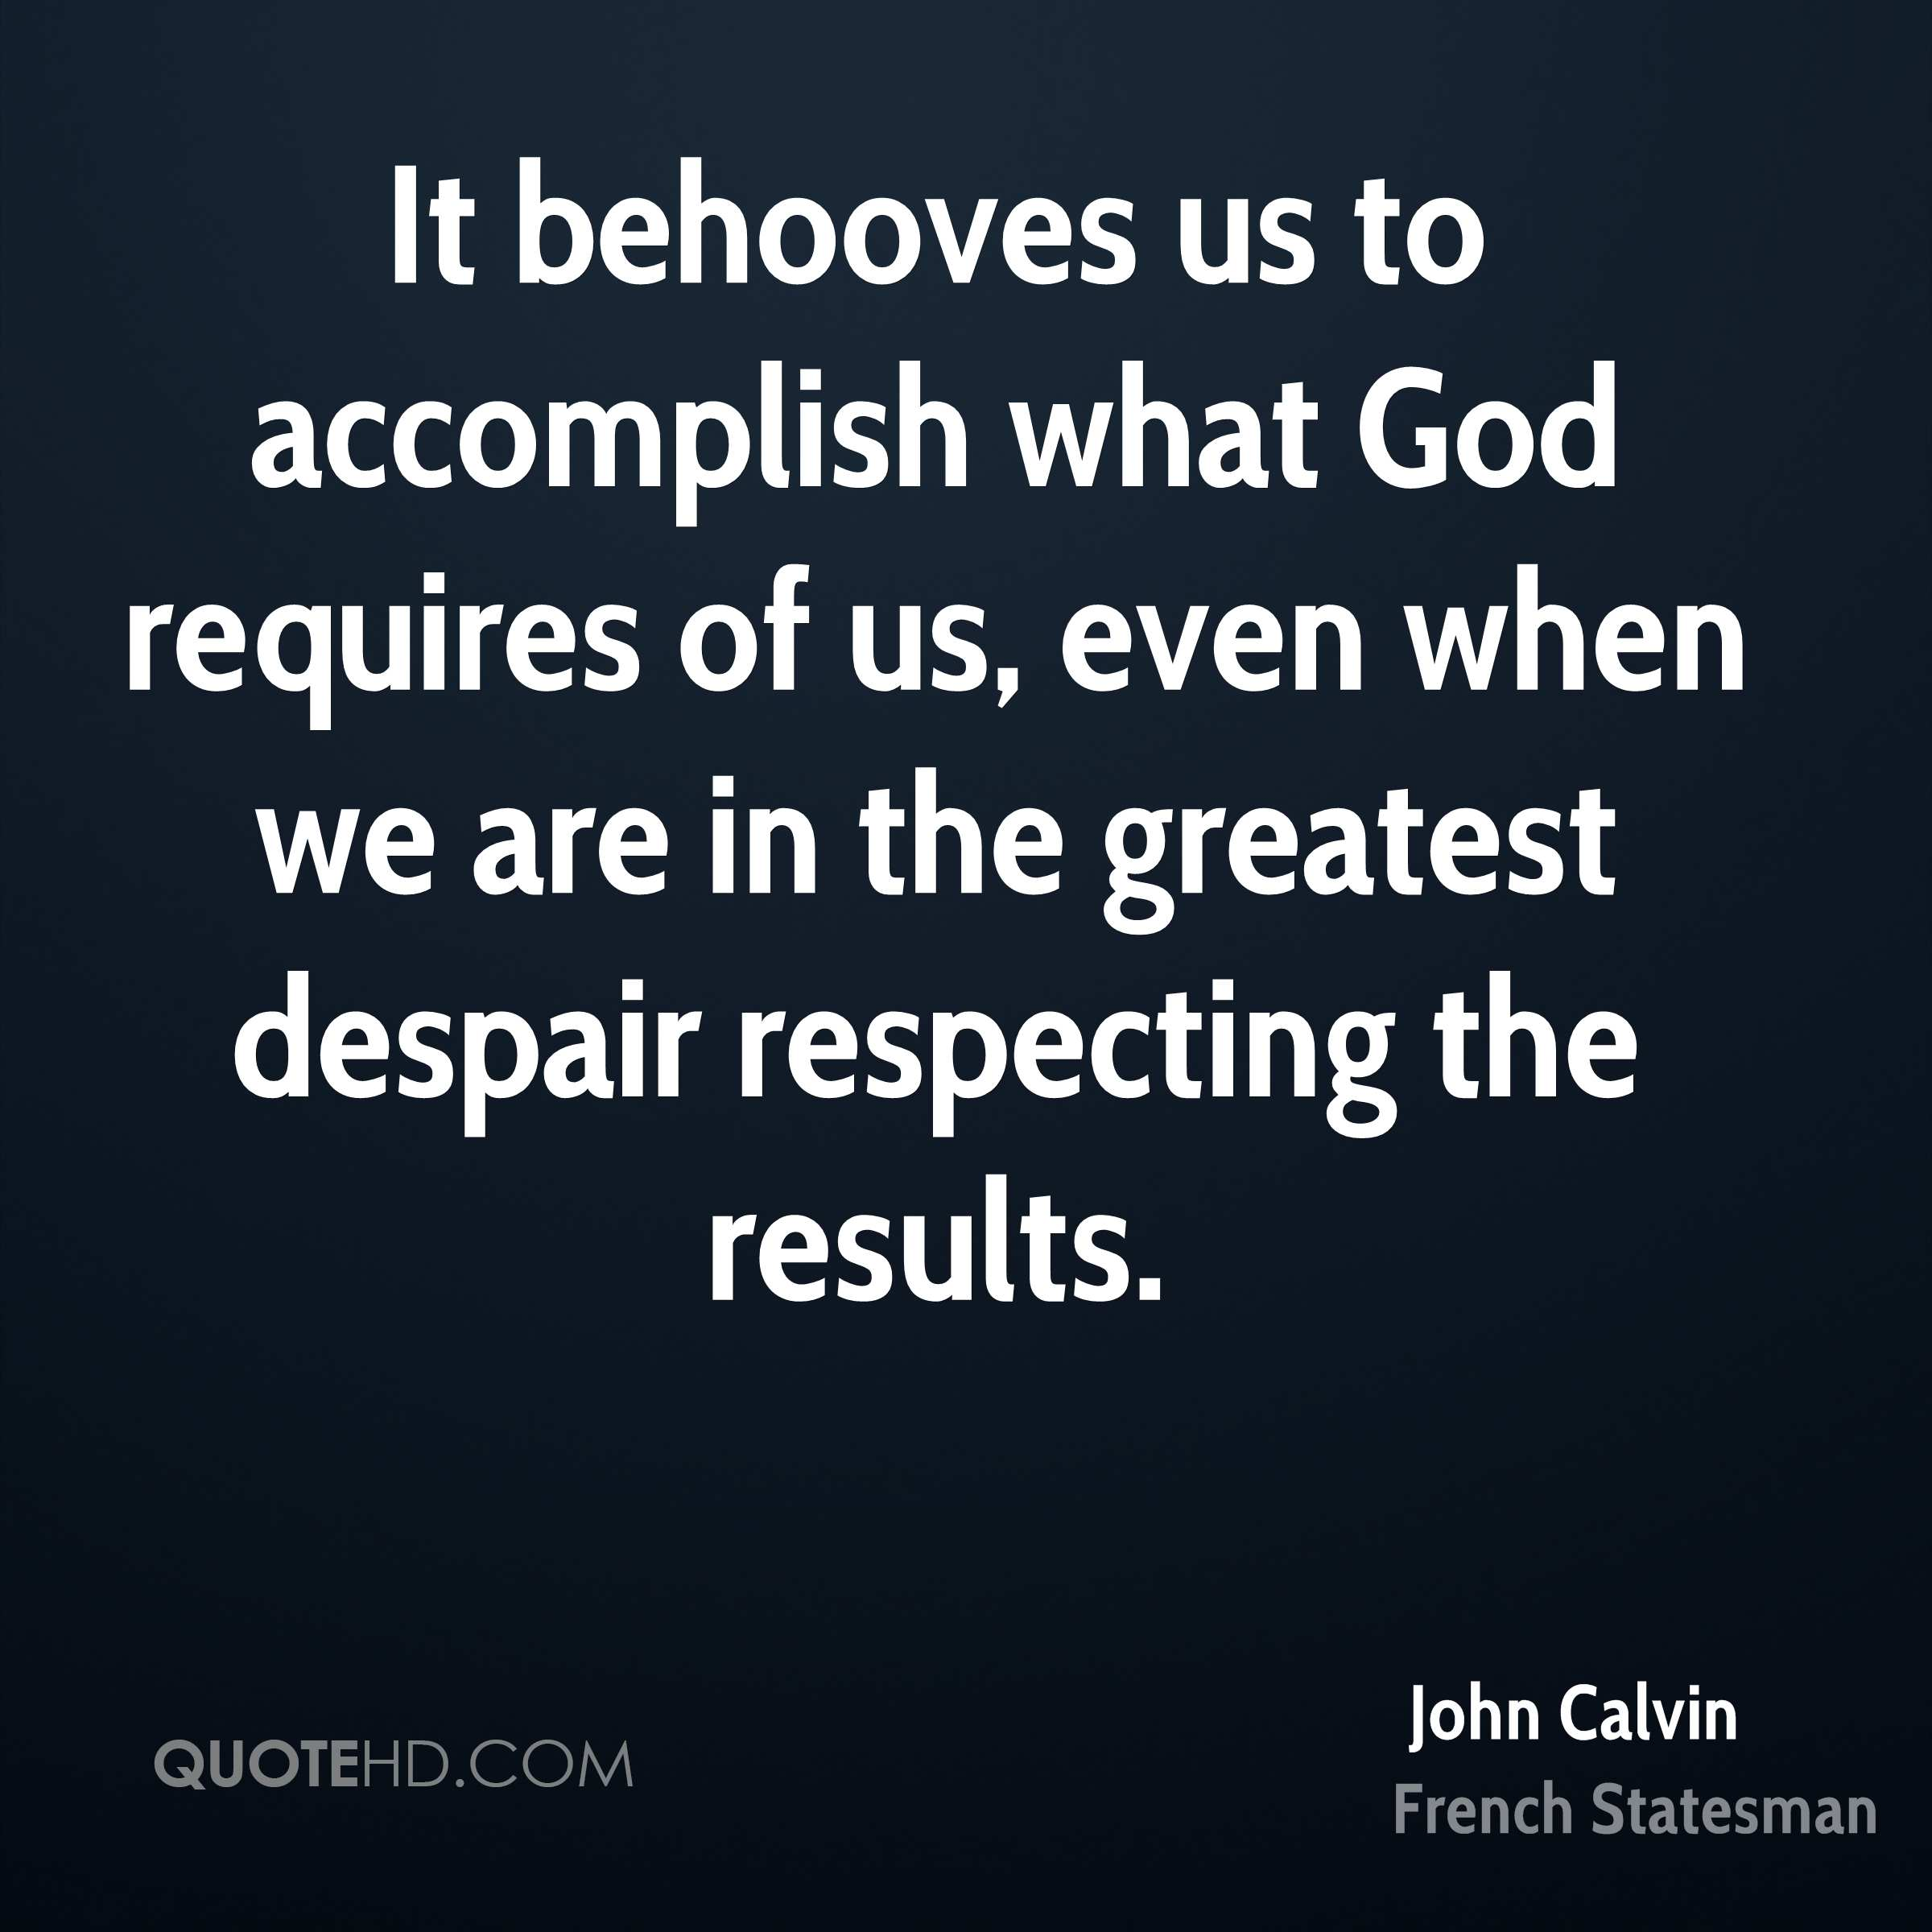 It behooves us to accomplish what God requires of us, even when we are in the greatest despair respecting the results.